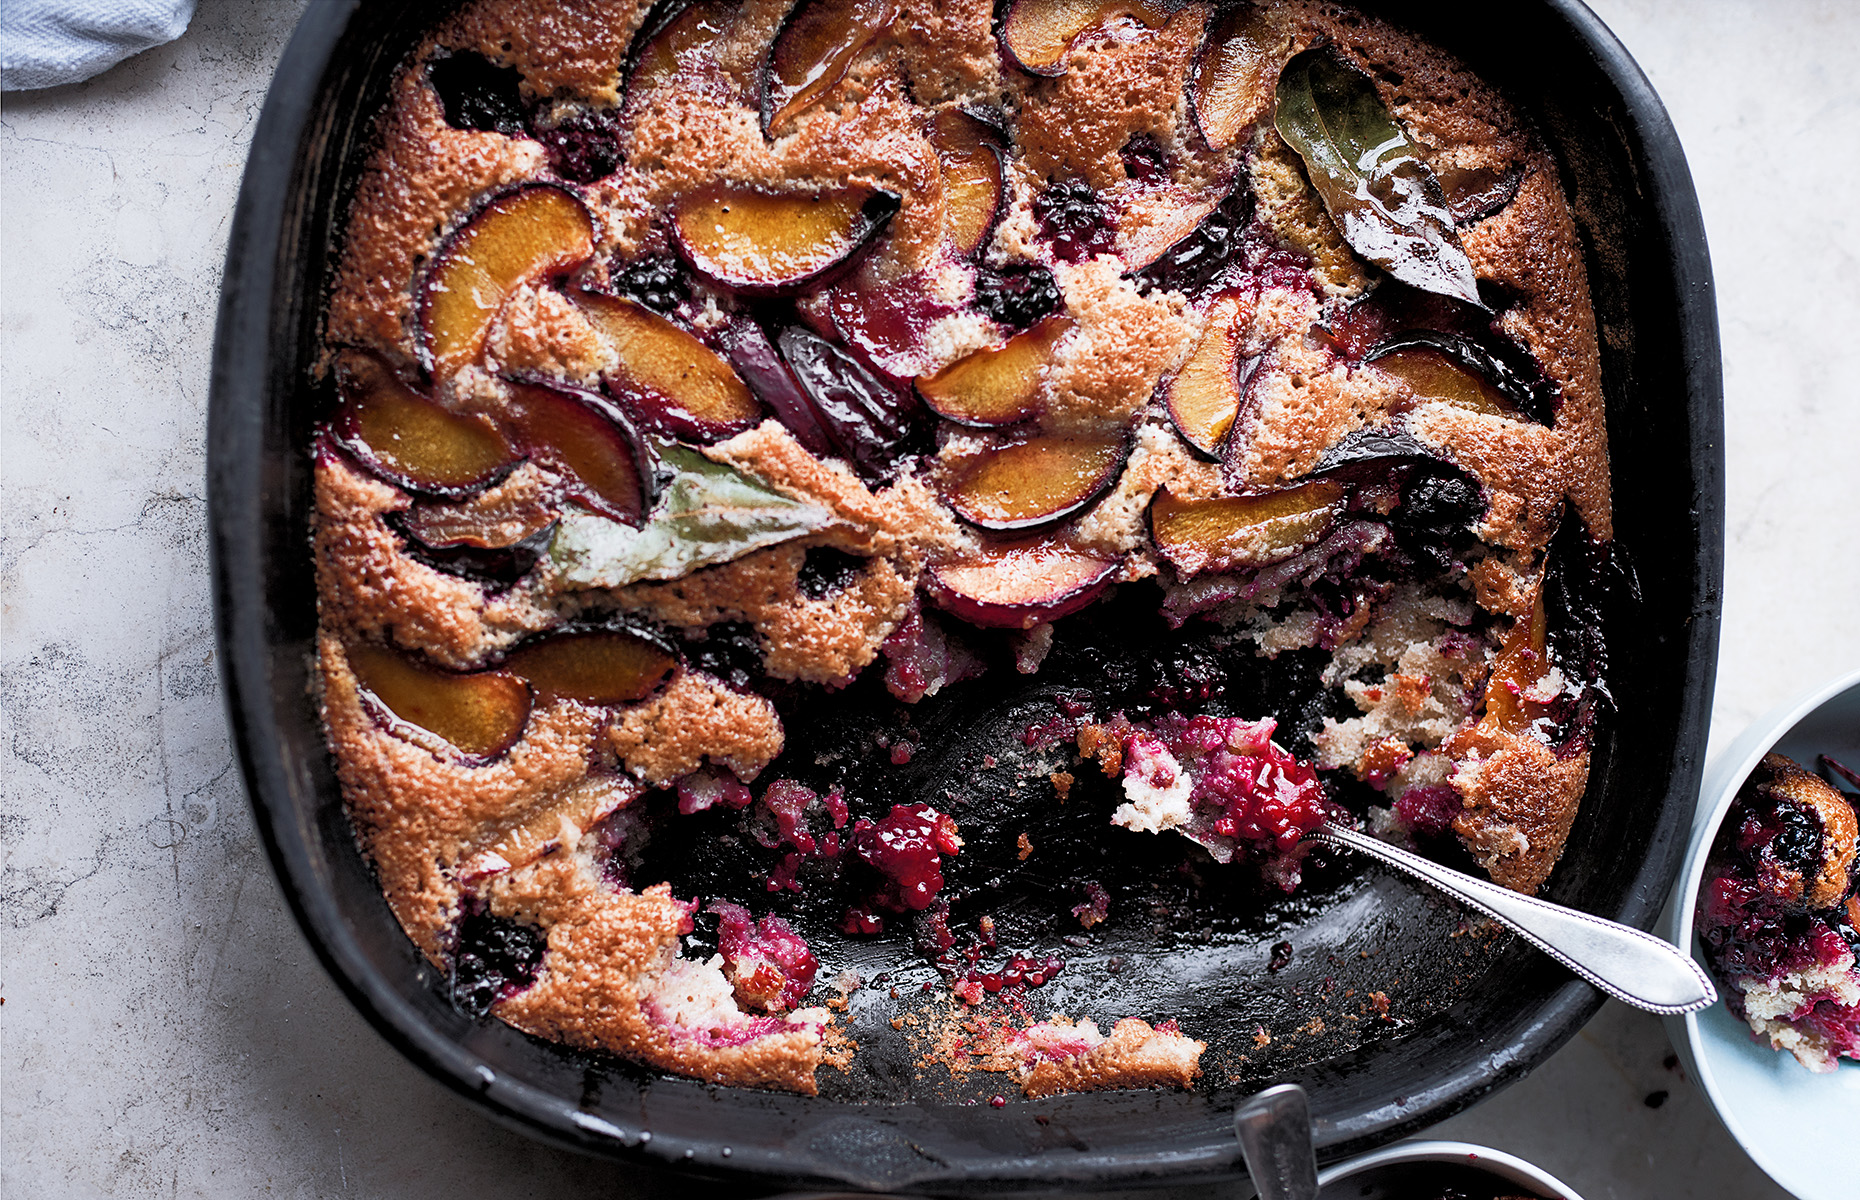 Plum, blackberry and bay friand